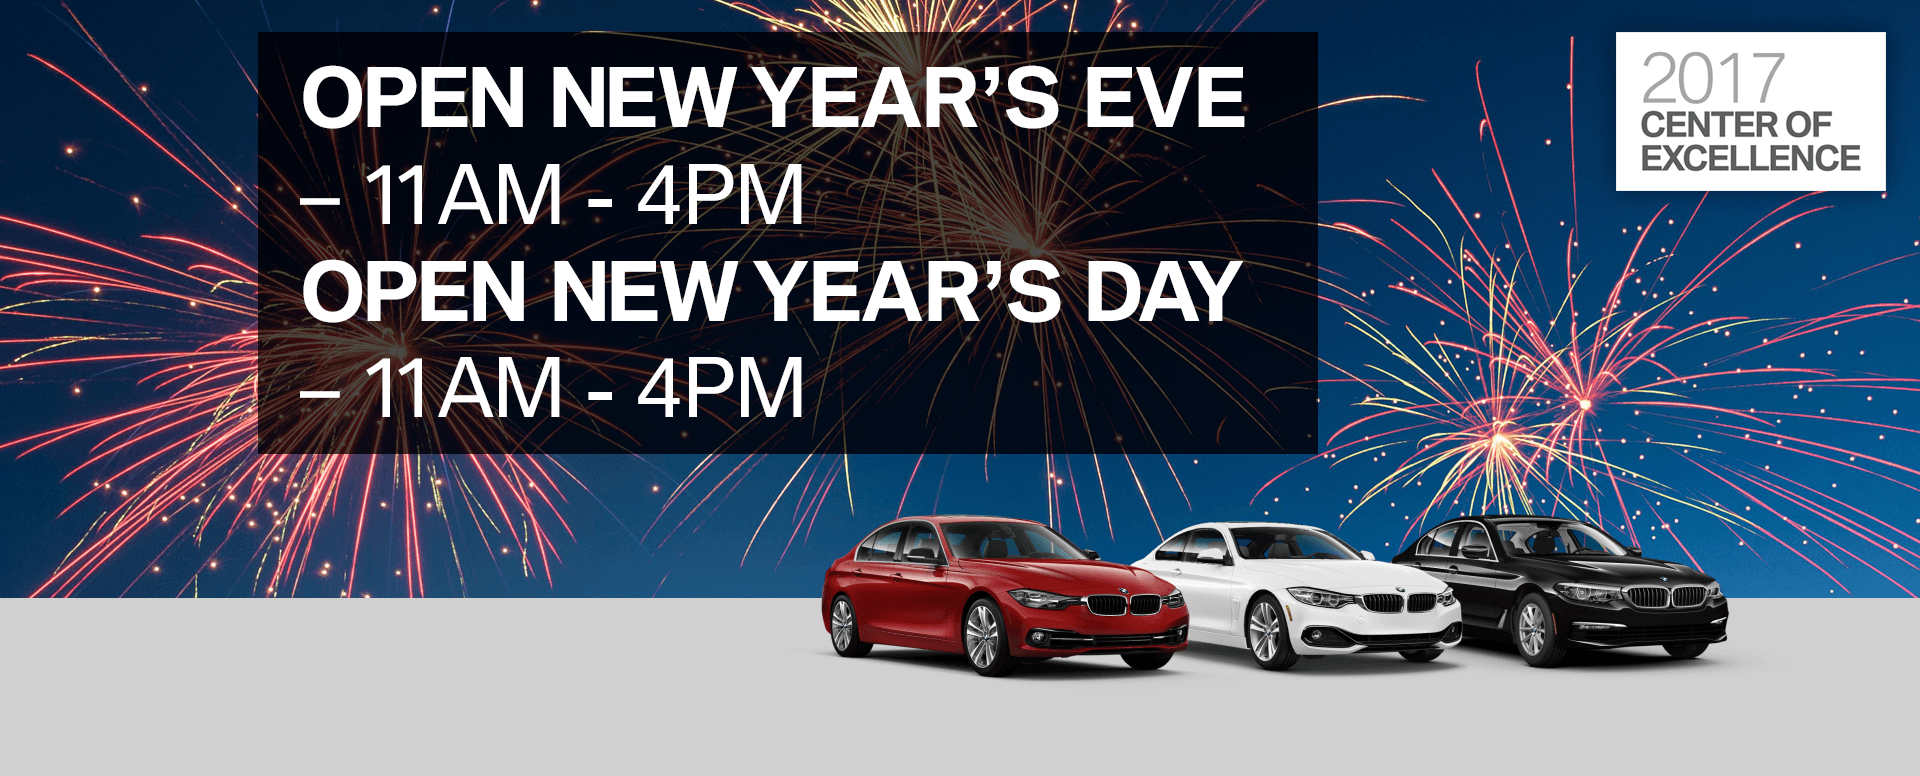 Passport BMW will be open this New Year's Eve and New Year ...